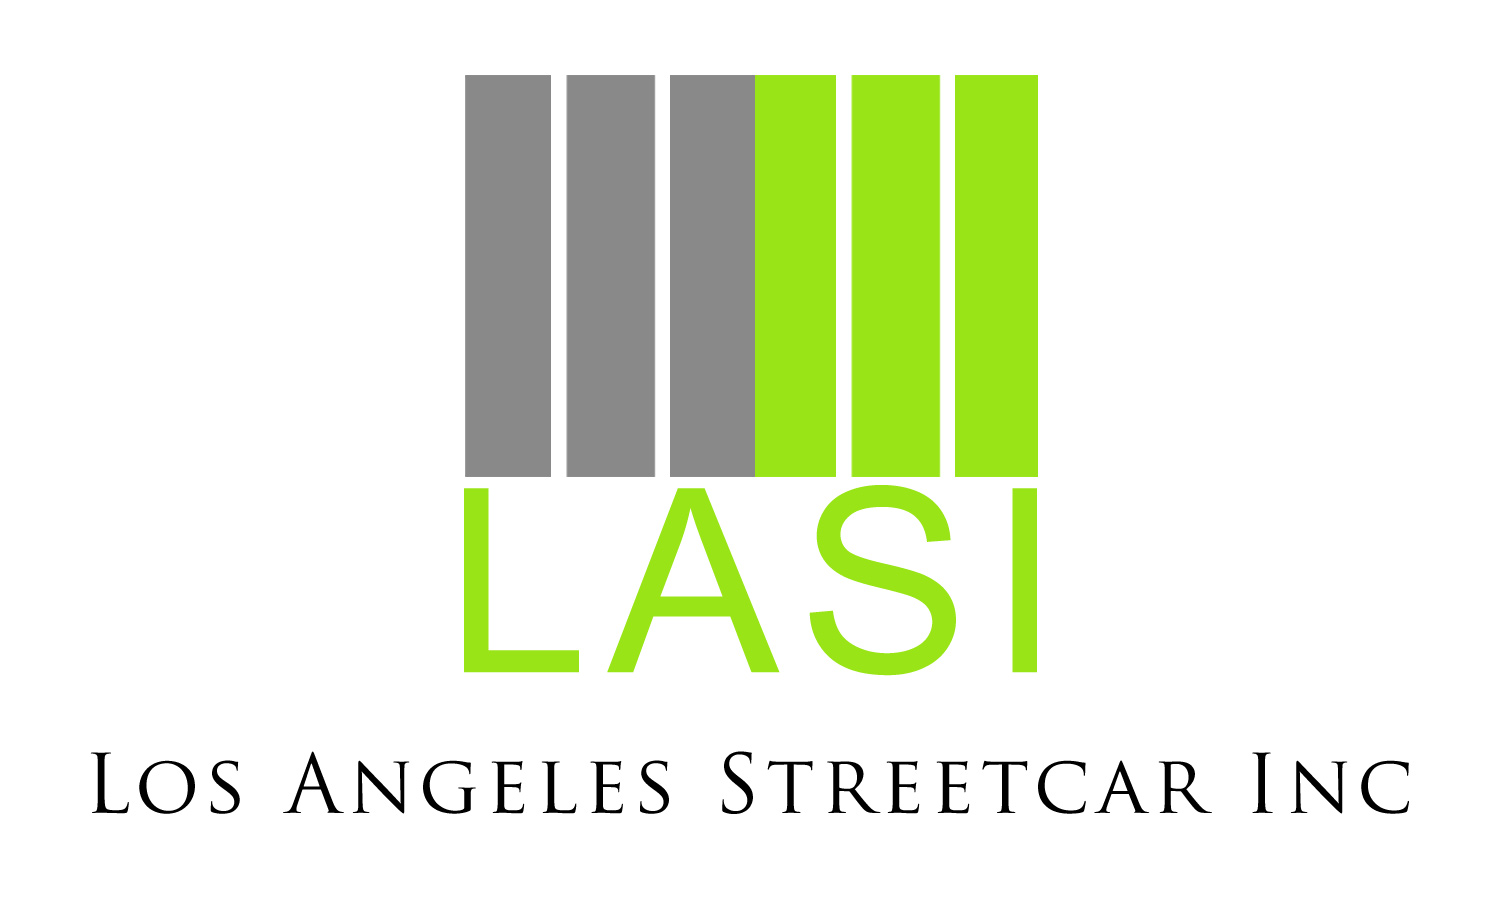 Los Angeles Streetcar Inc.